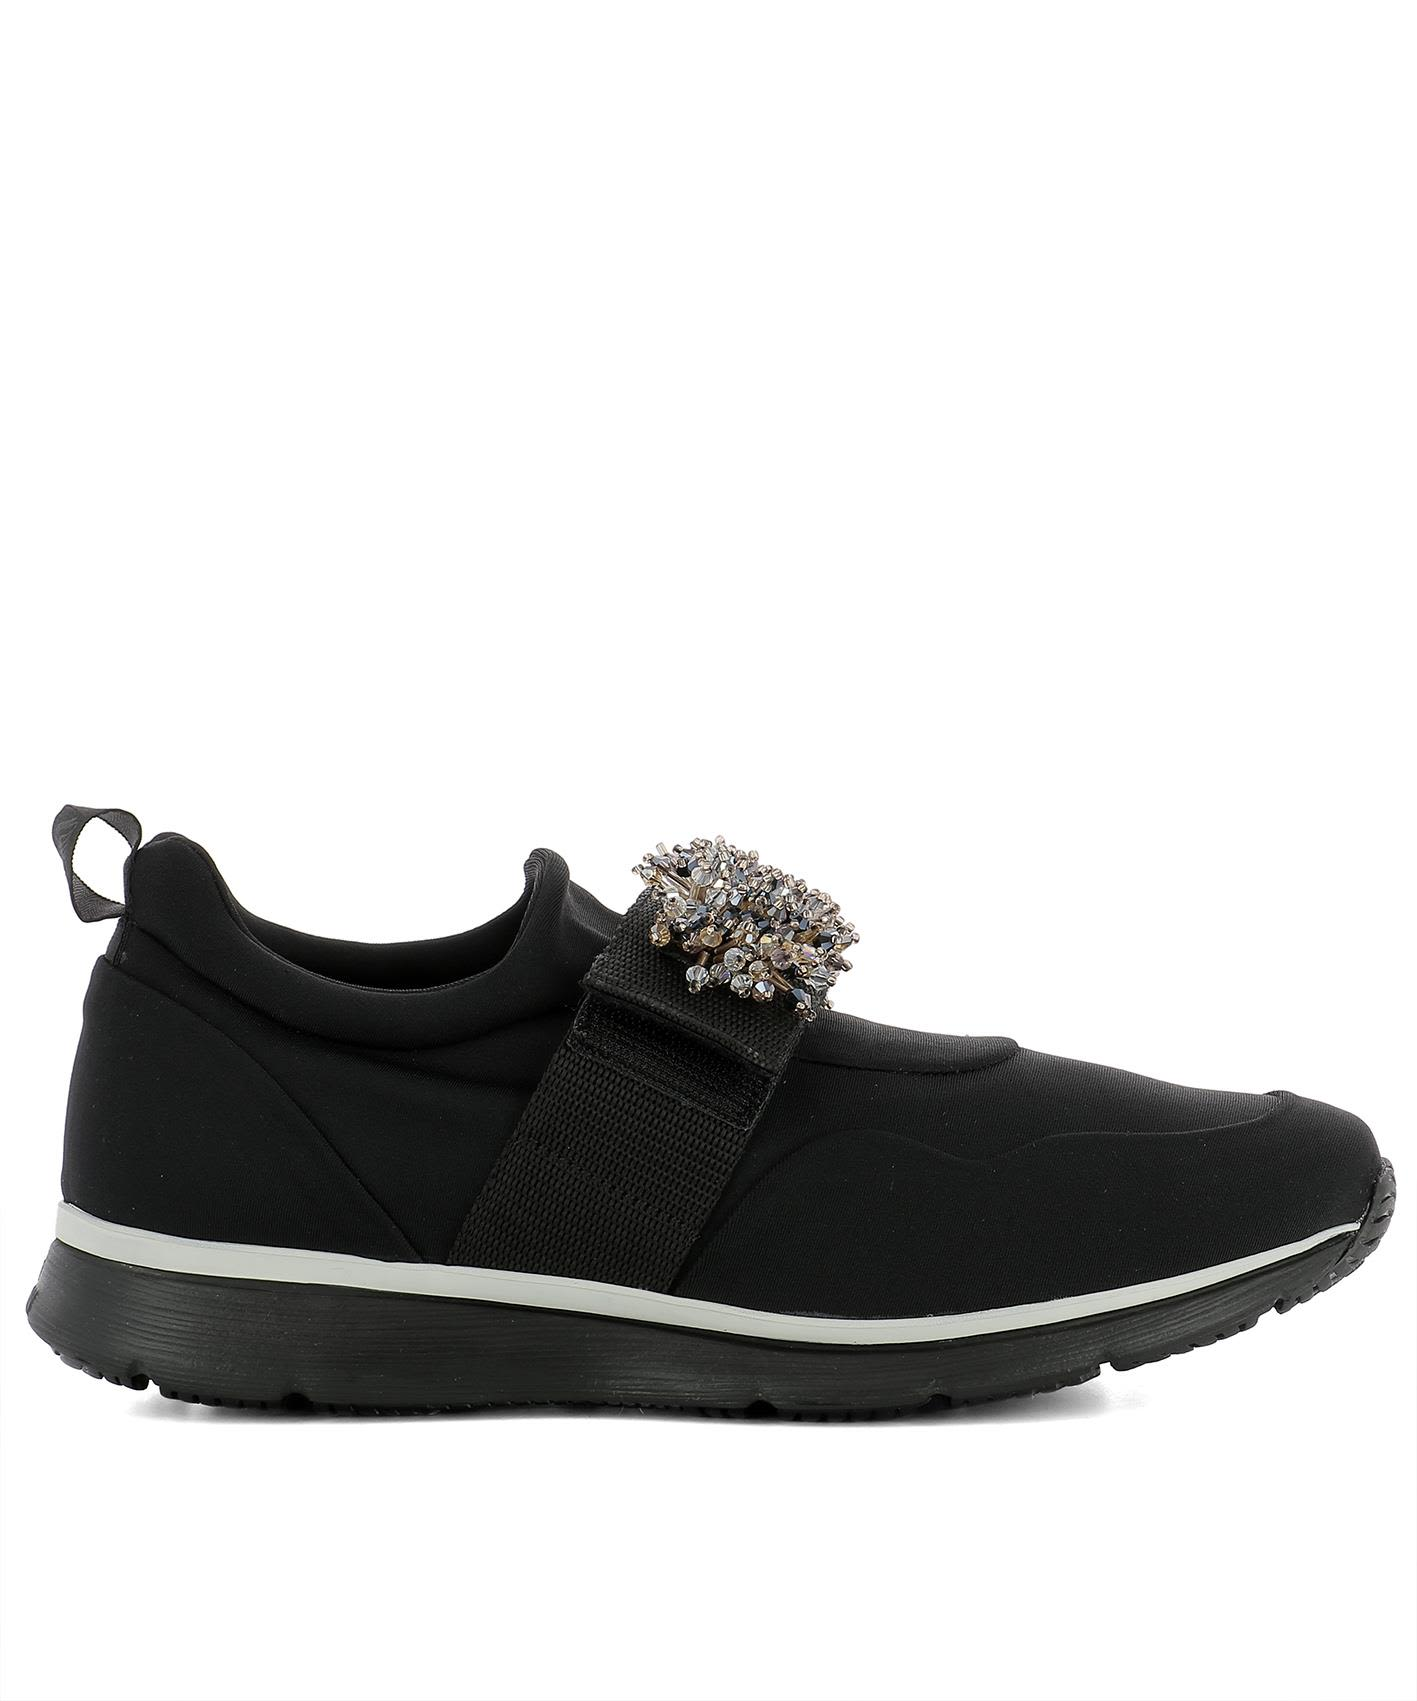 Black Fabric Sneakers